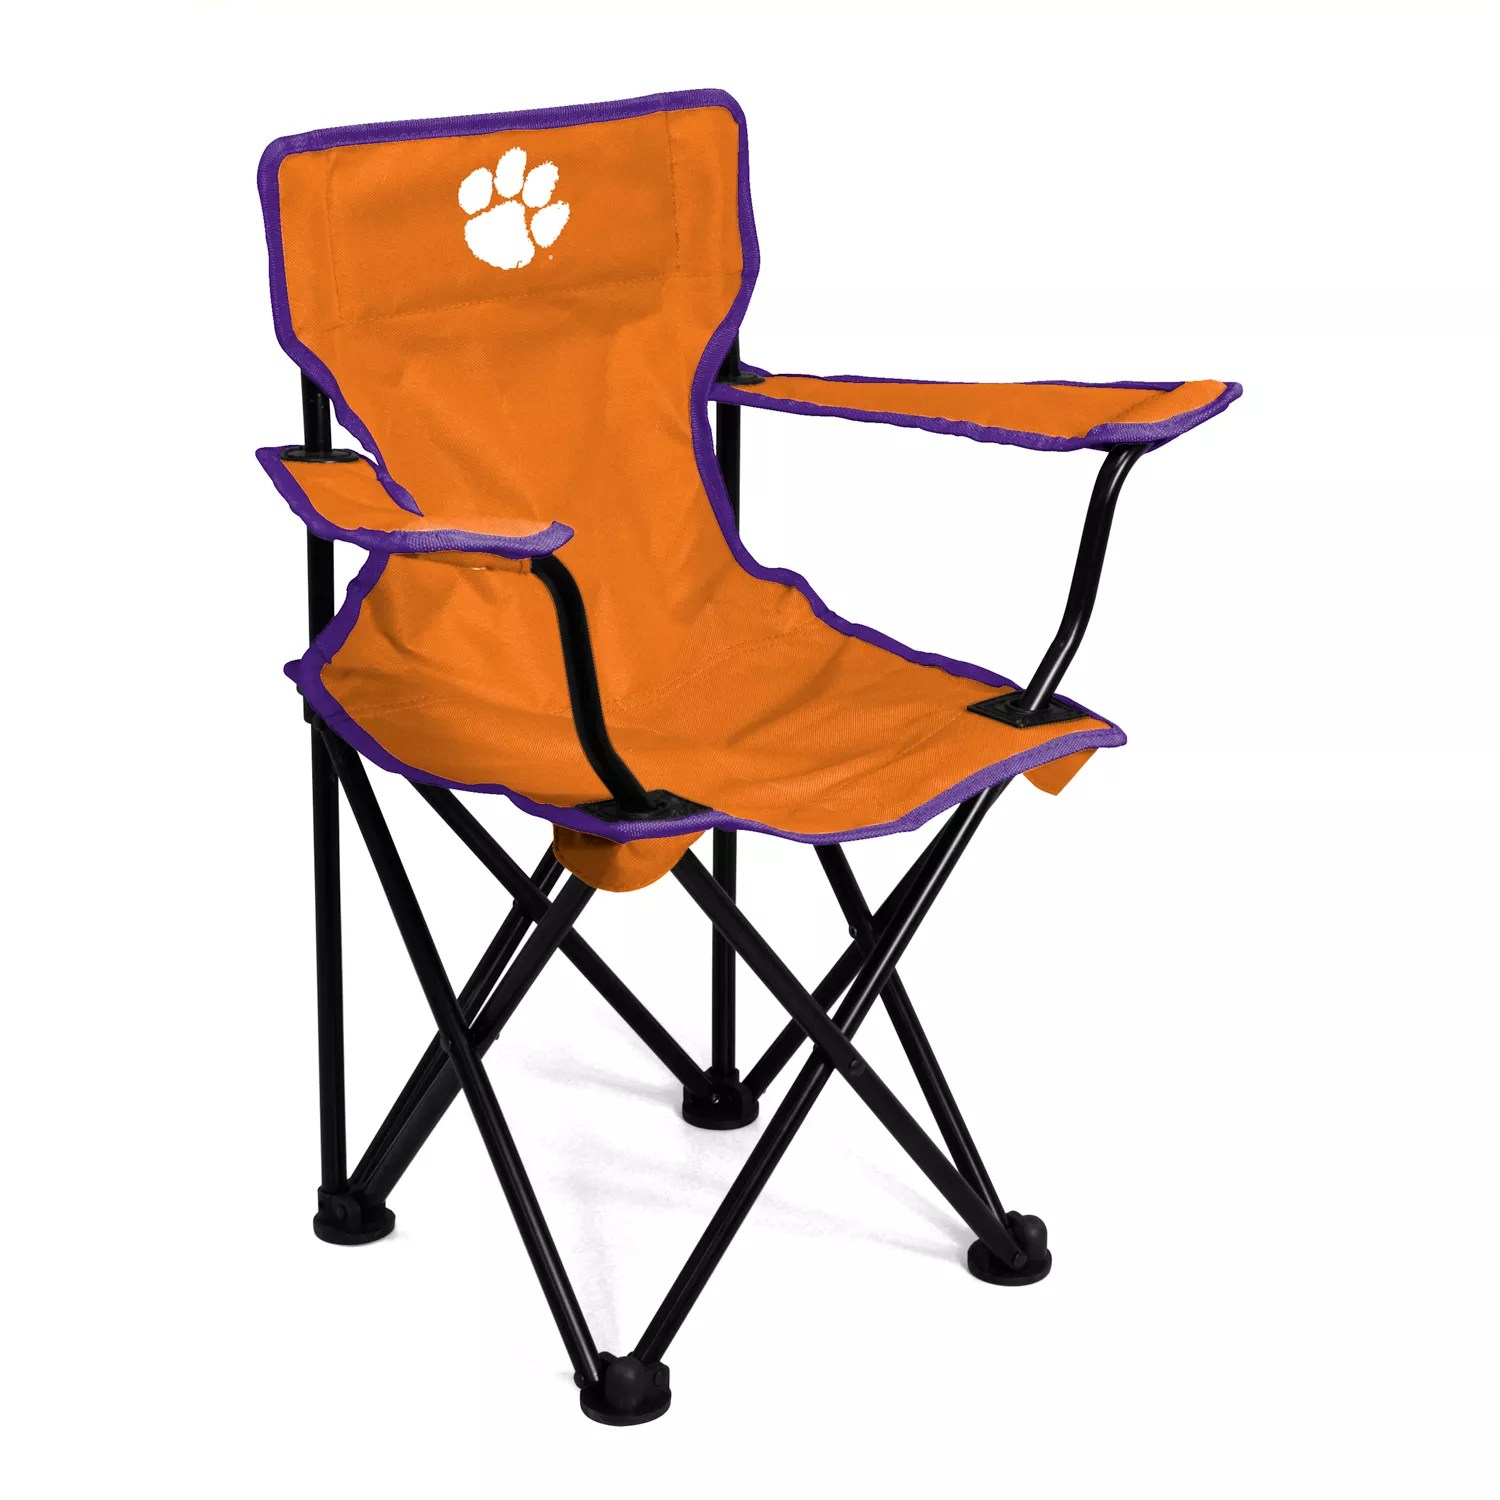 Clemson Tigers Portable Folding Chair  Toddler